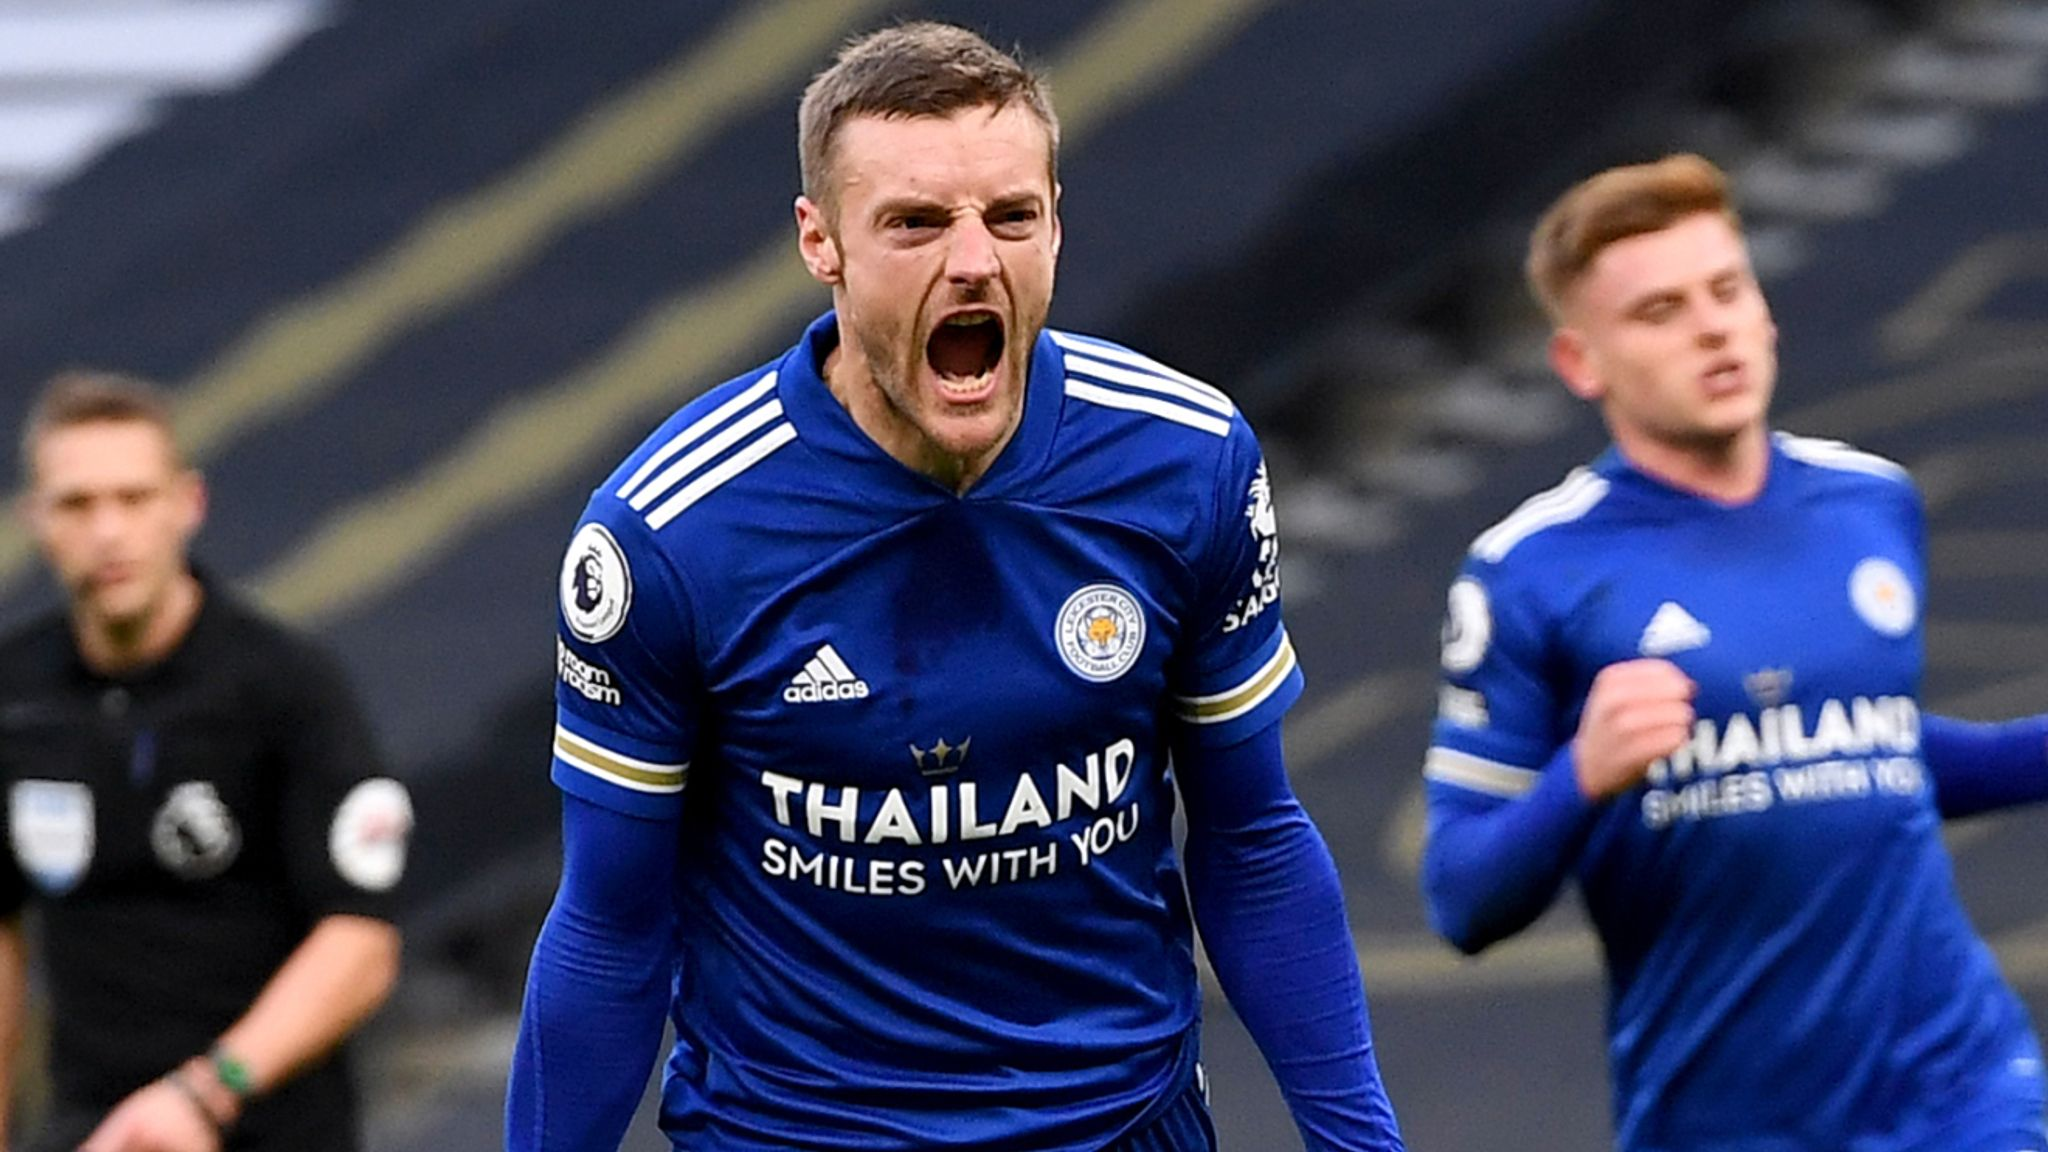 Leicester 3-0 West Brom